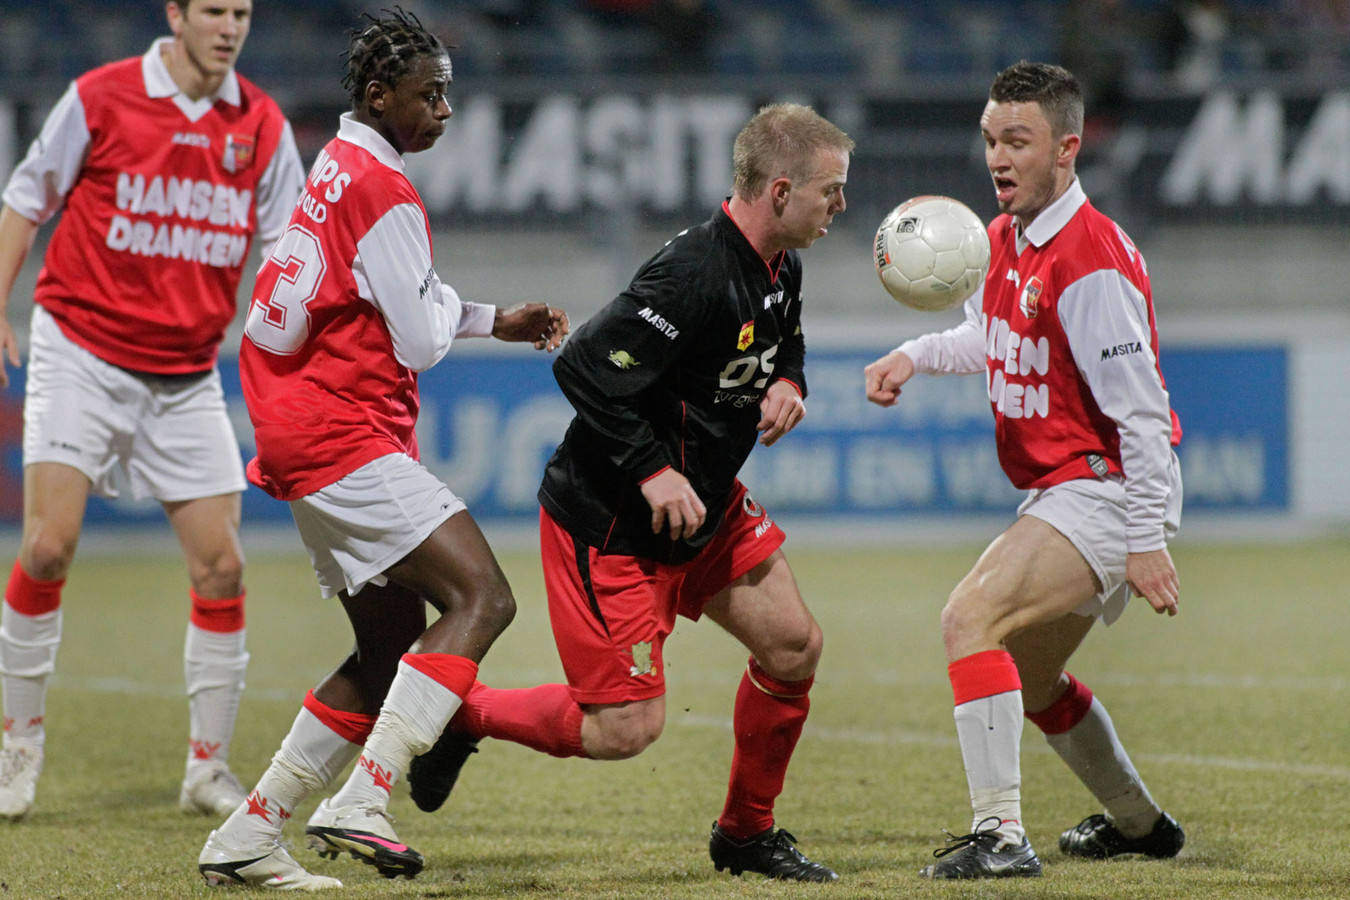 Faty Papy namens MVV in actie tegen Excelsior in 2009.